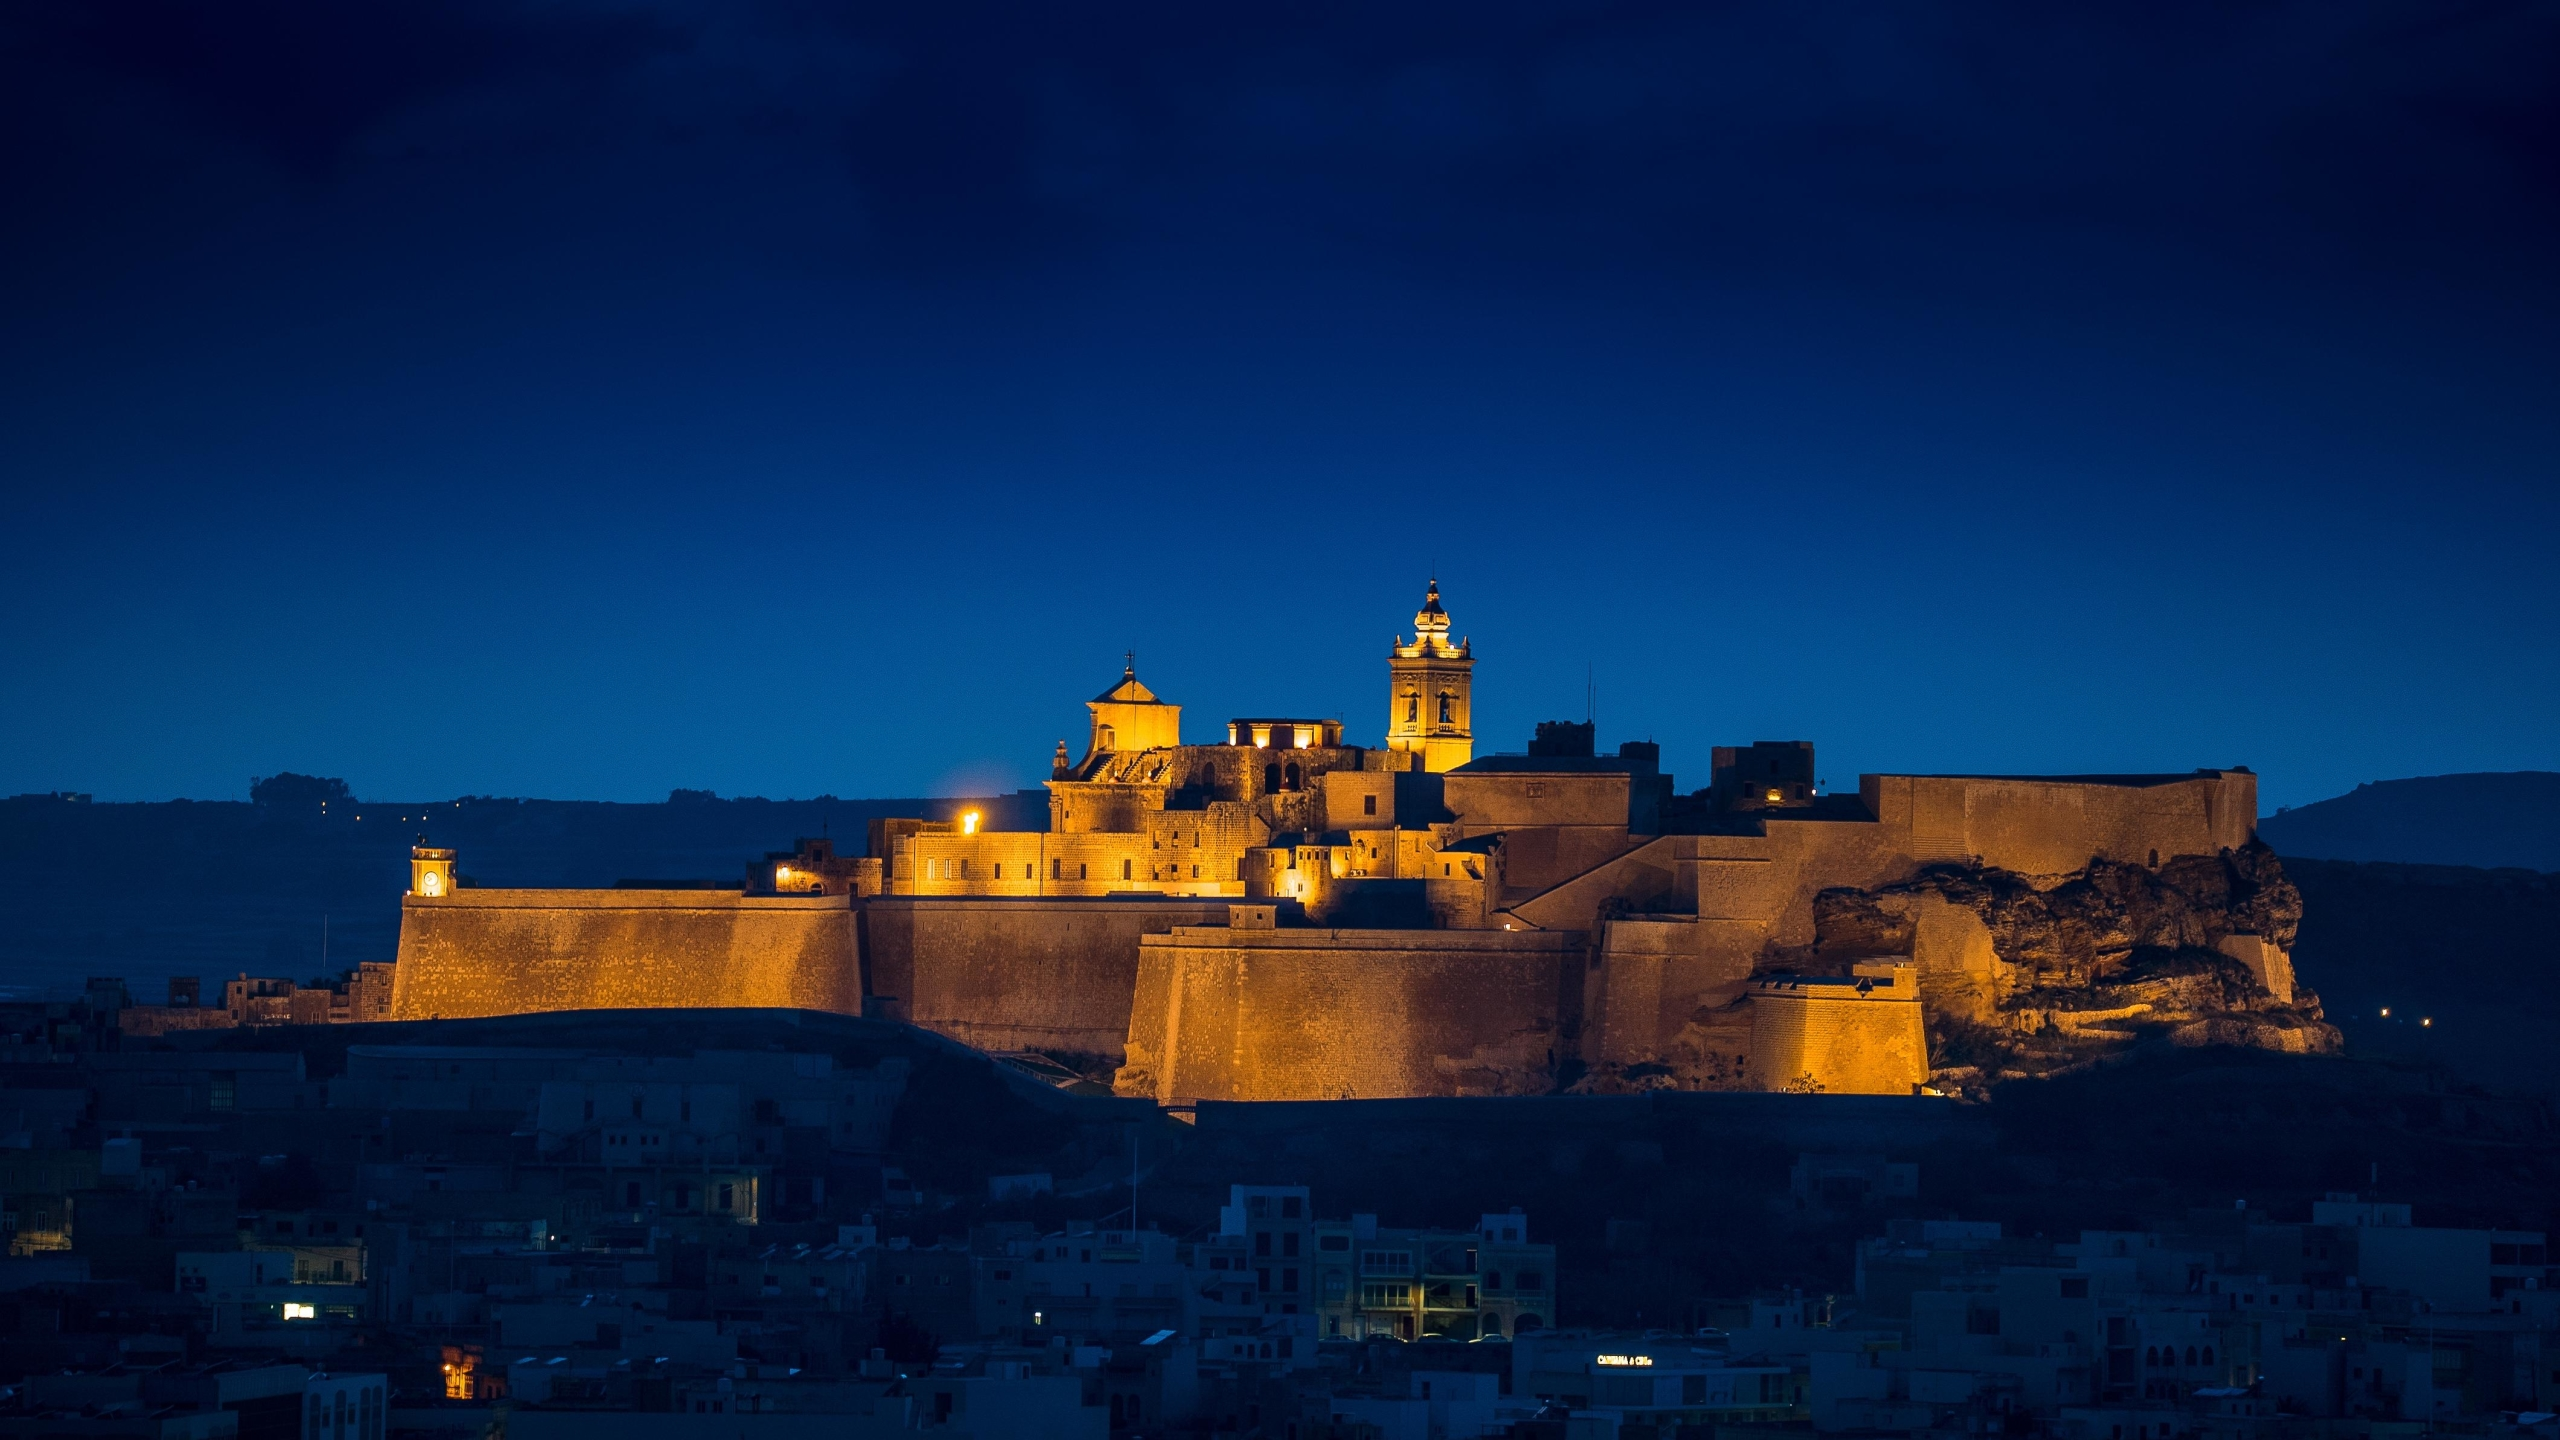 Citadel of Victoria the Island of Gozo 4K Wallpaper in 2560x1440 Resolution